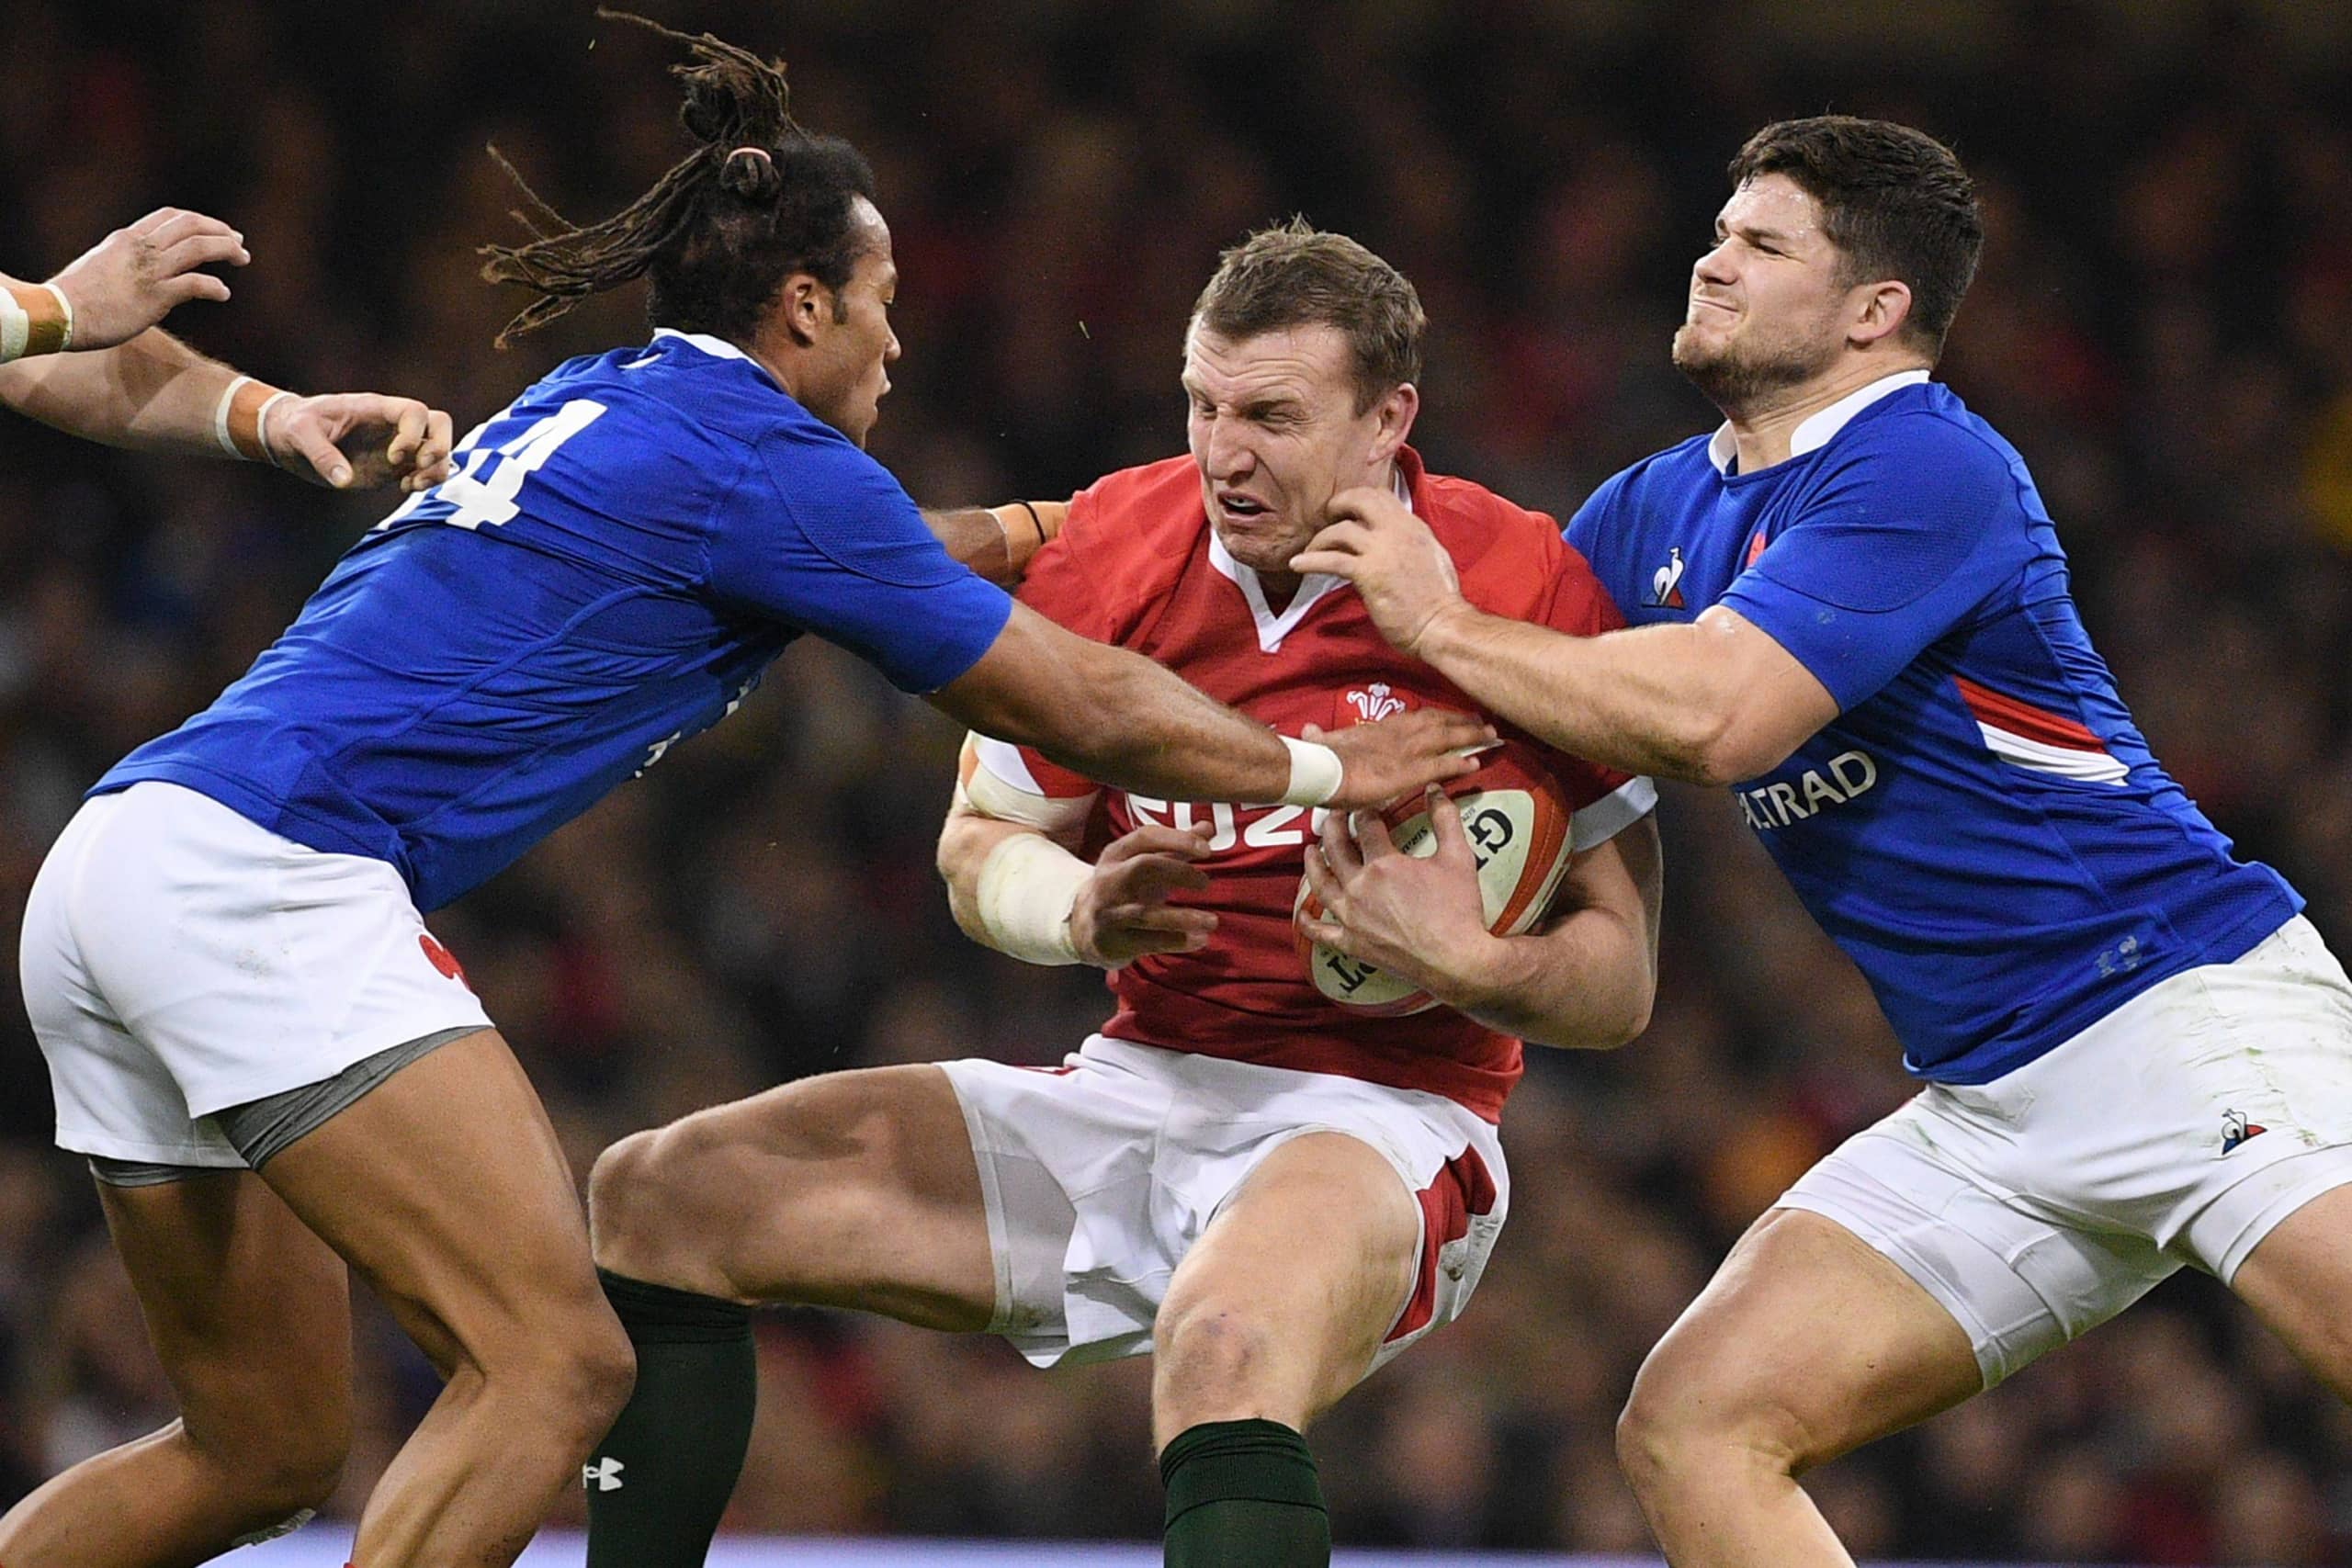 Wales center Hadleigh Parkes (center) is tackled during a Six Nations match between Wales and France on Feb. 22 in Cardiff. | AFP-JIJI